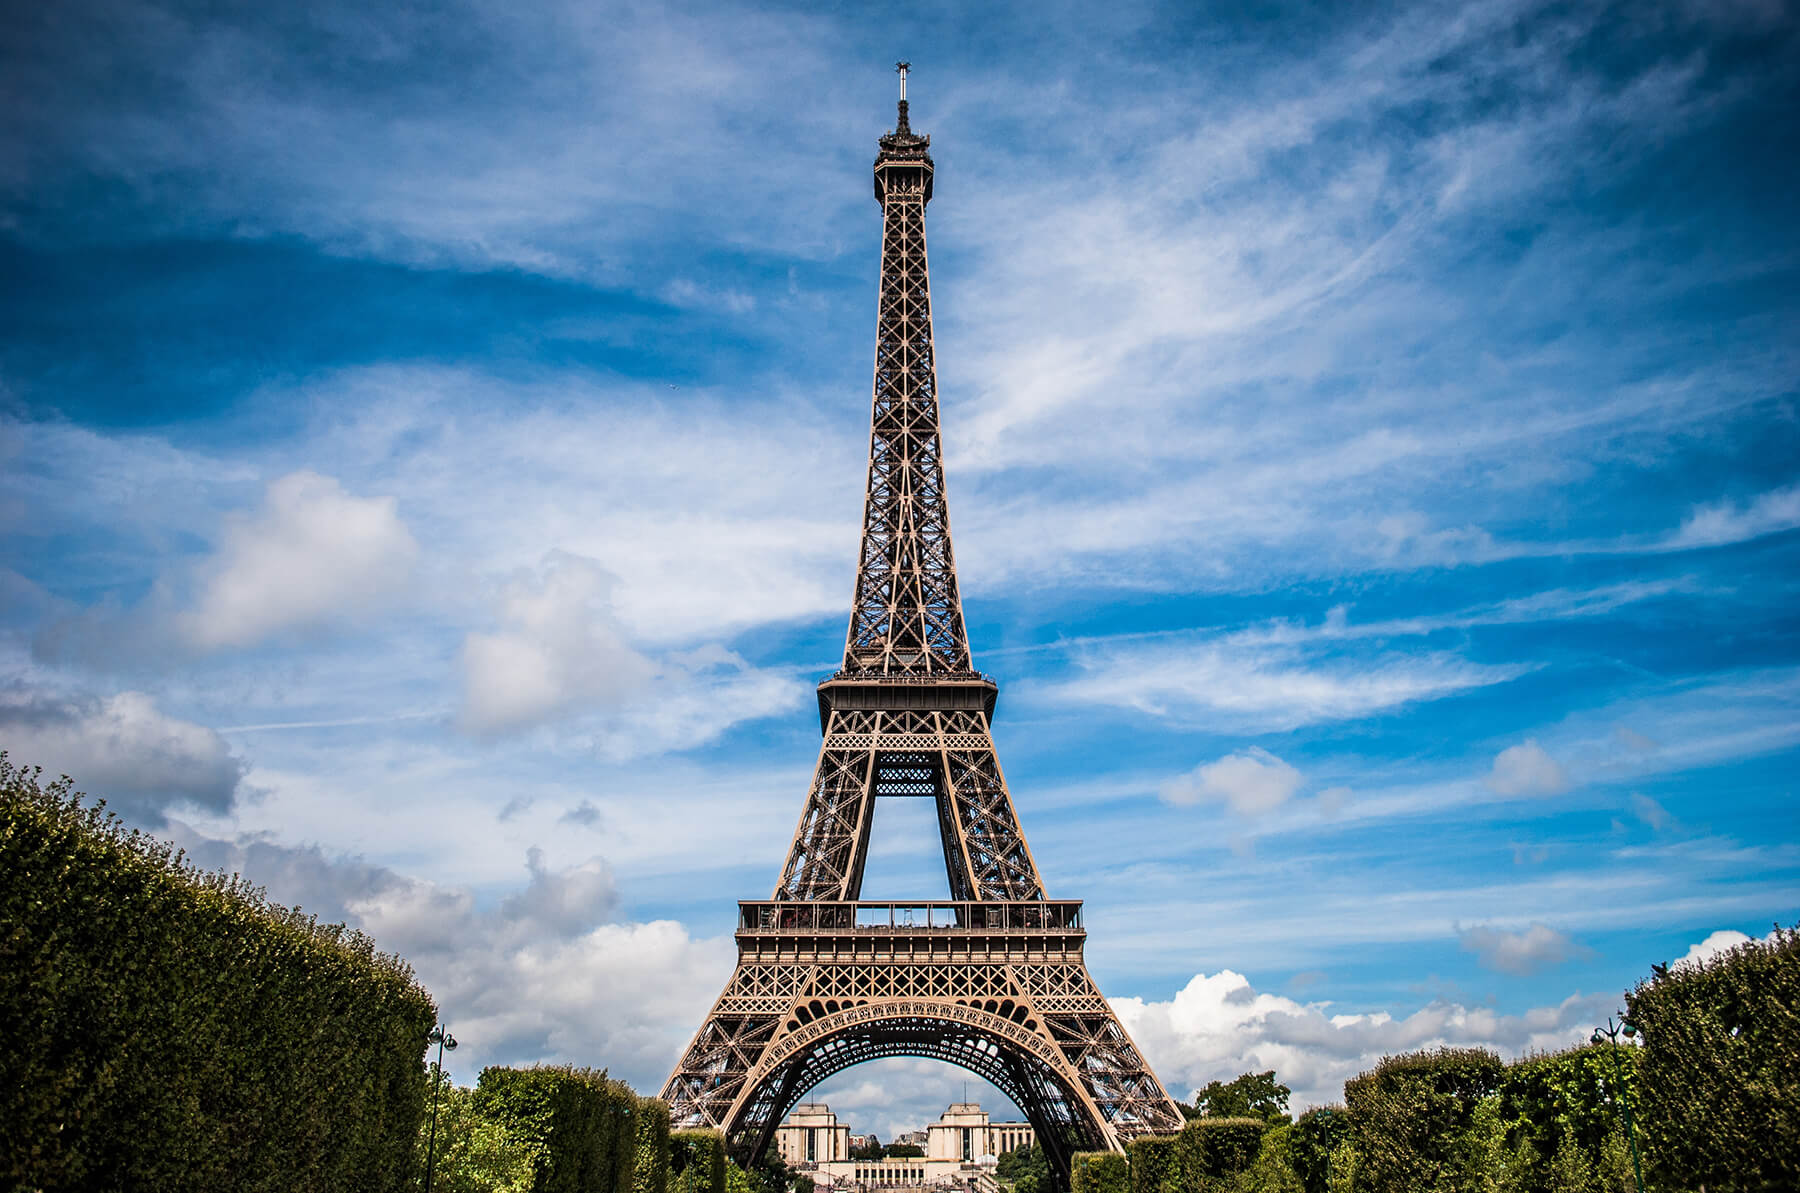 PR040 Eiffel Tower in top shape for 130th birthday thanks to Edgetechs Triseal